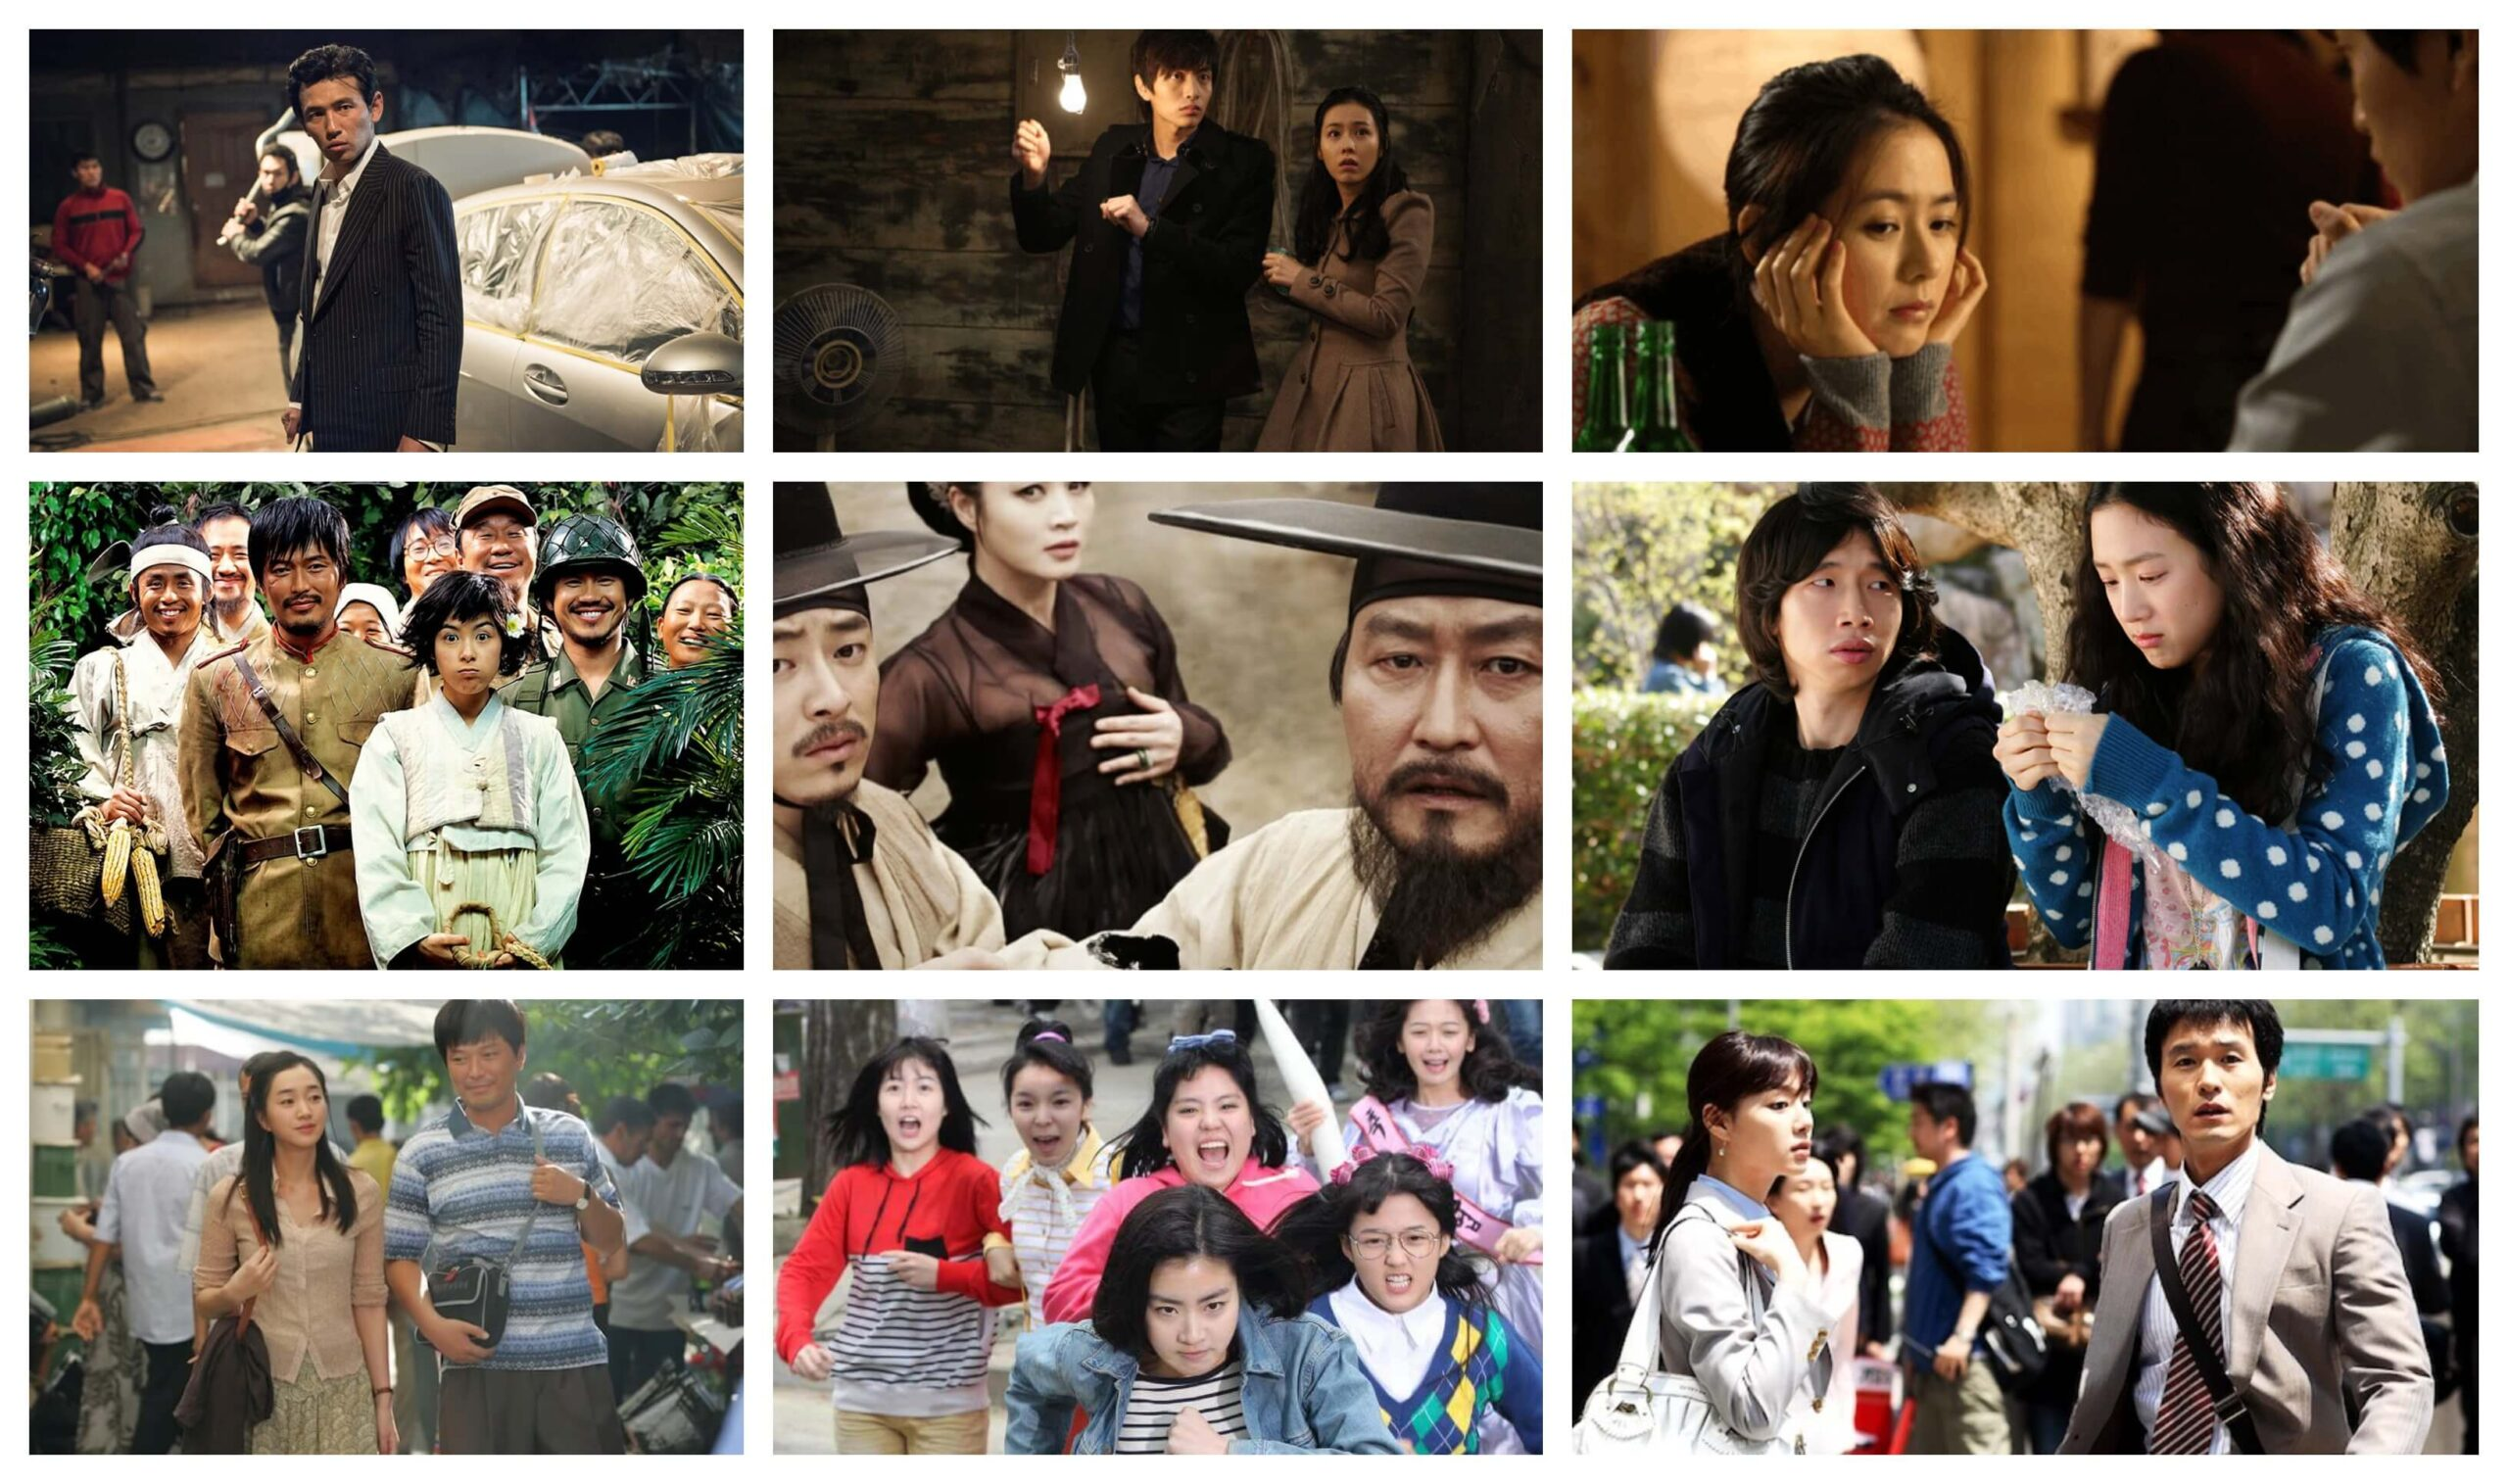 20 Korean Comedy Movies To Watch [2021]